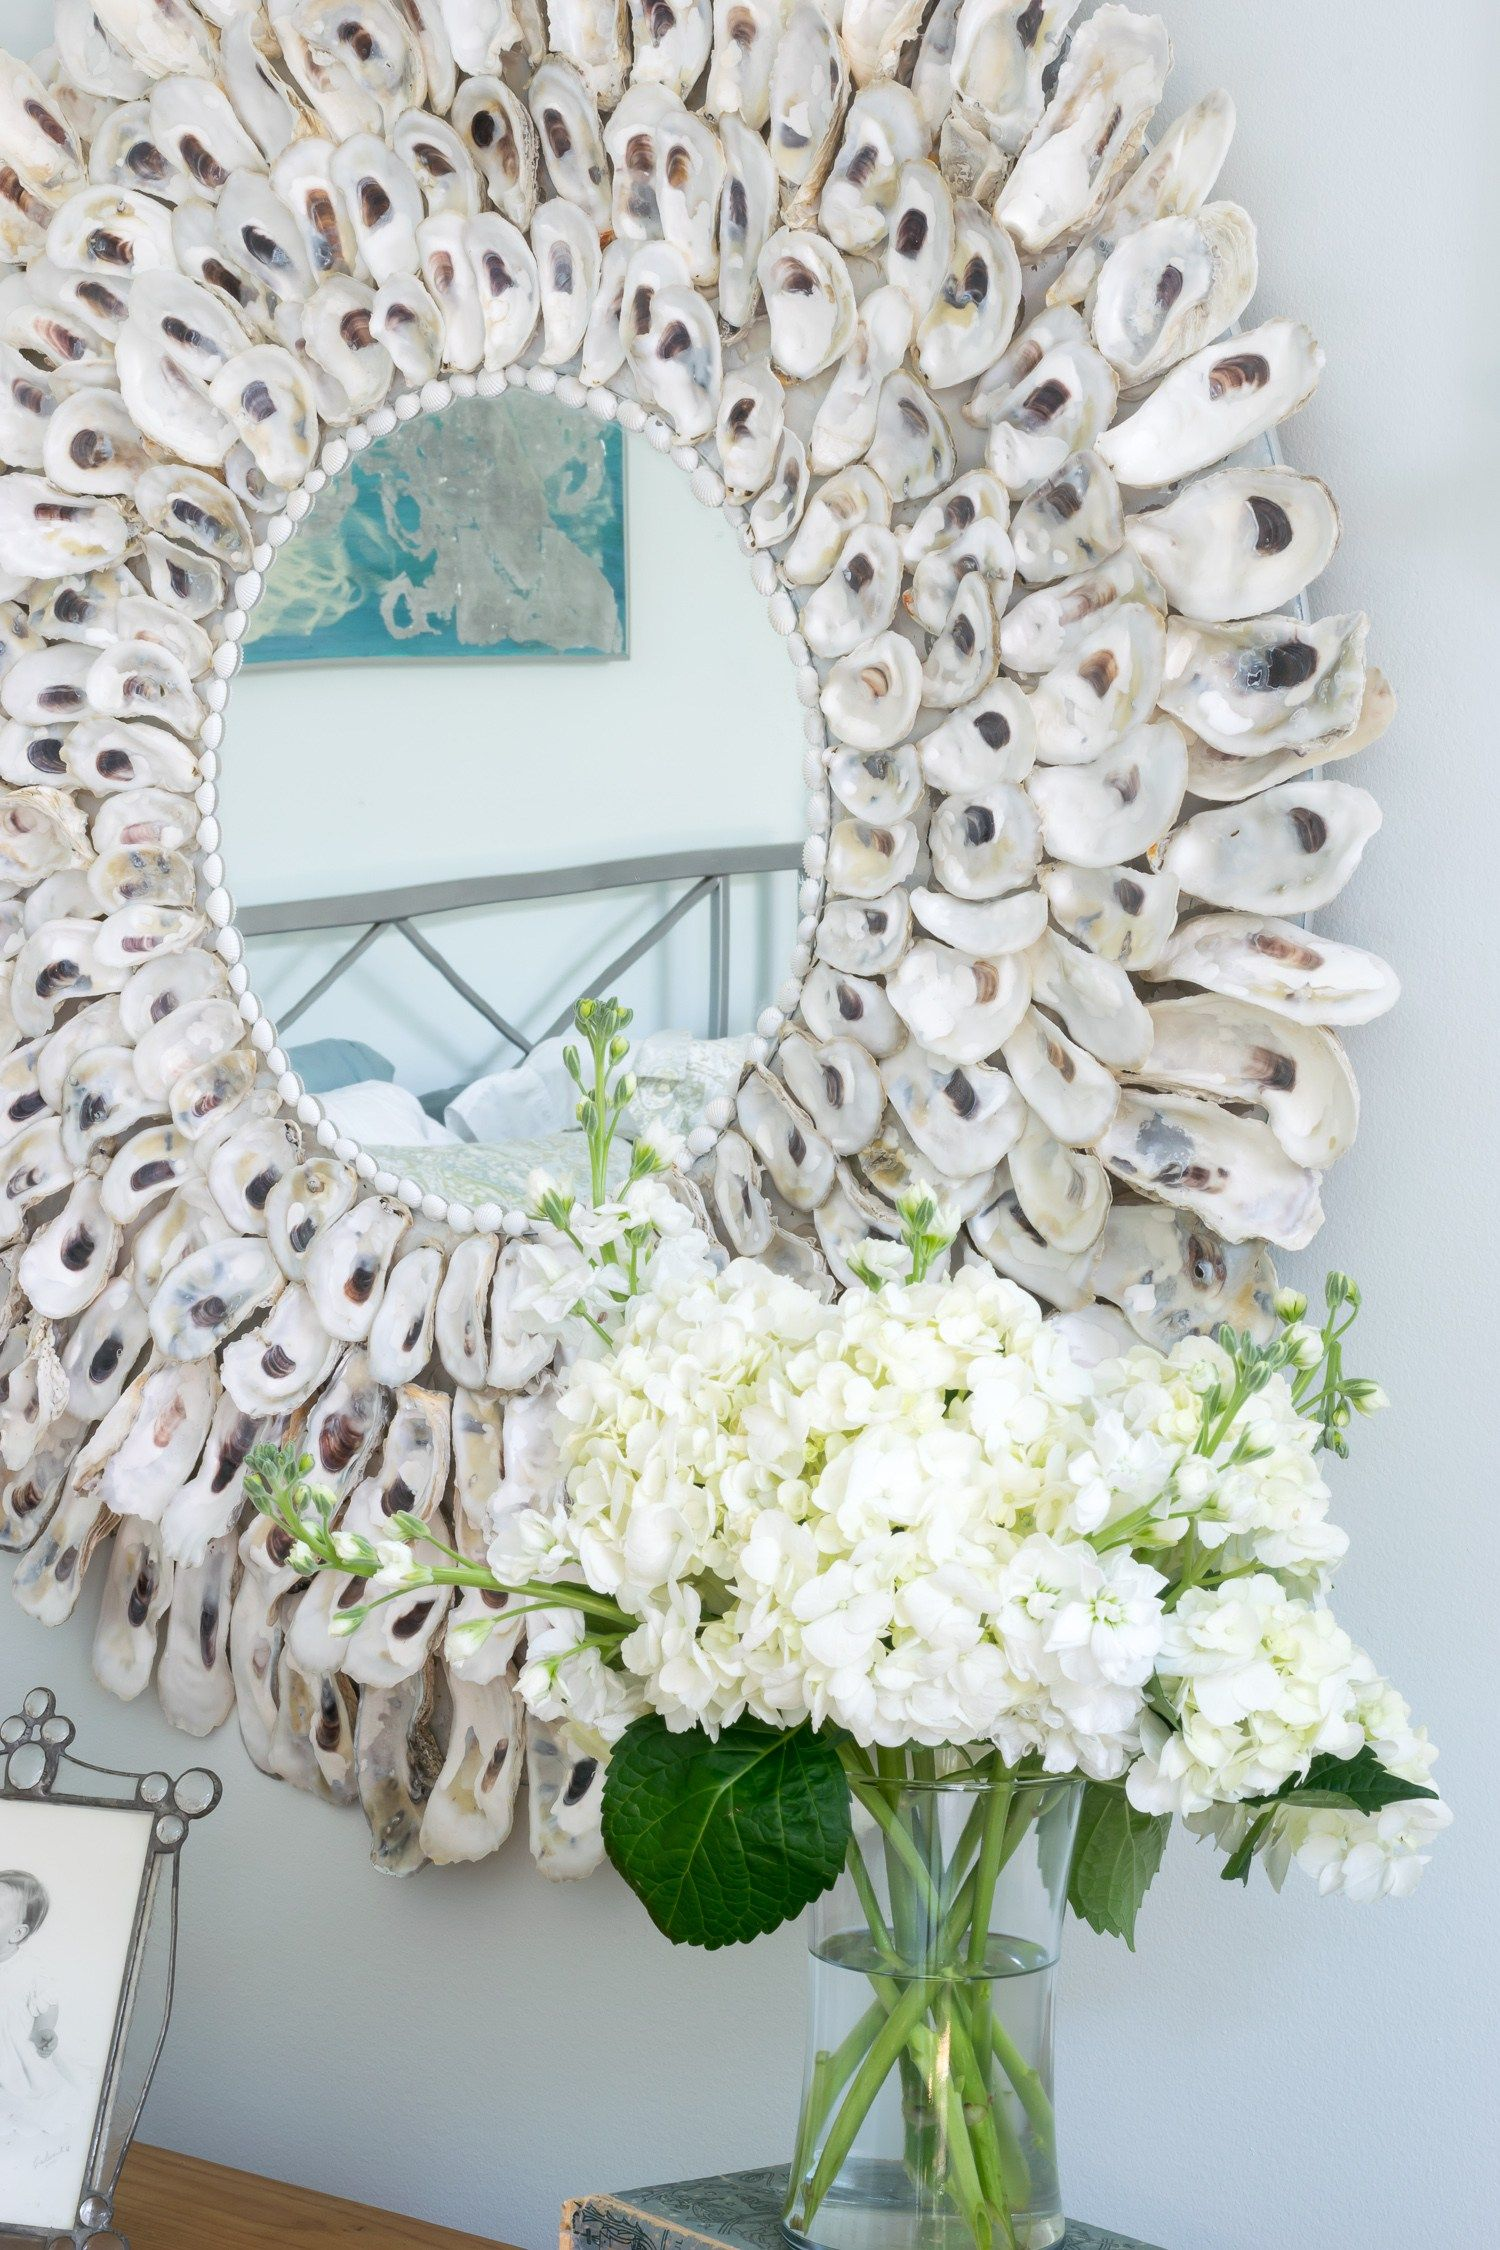 Easy To Make Oyster Shell Mirror Oyster Shell Crafts Seashell